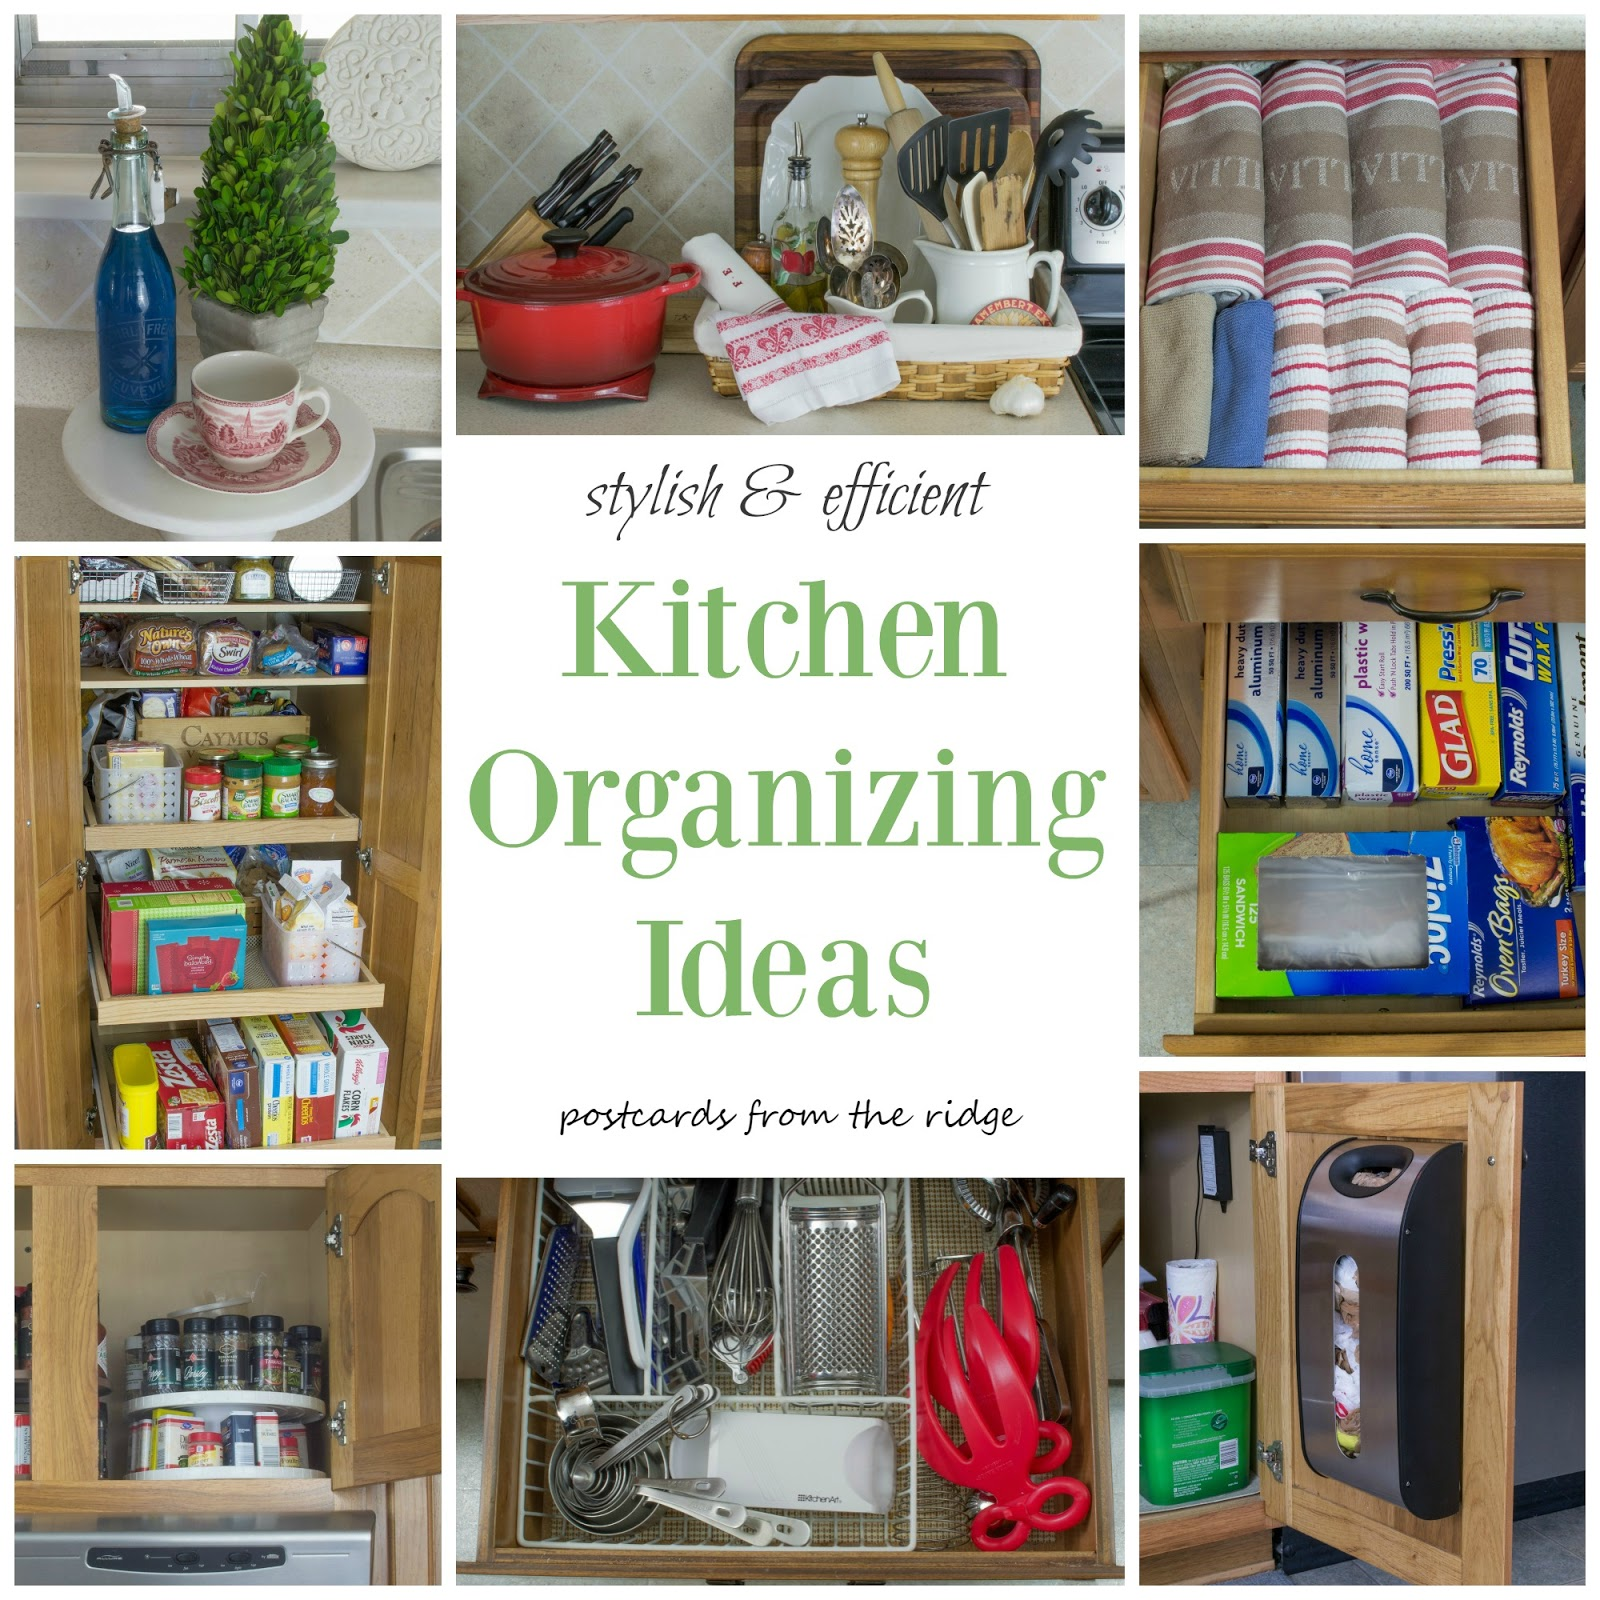 For Organizing Kitchen Kitchen Organization Tips Postcards From The Ridge